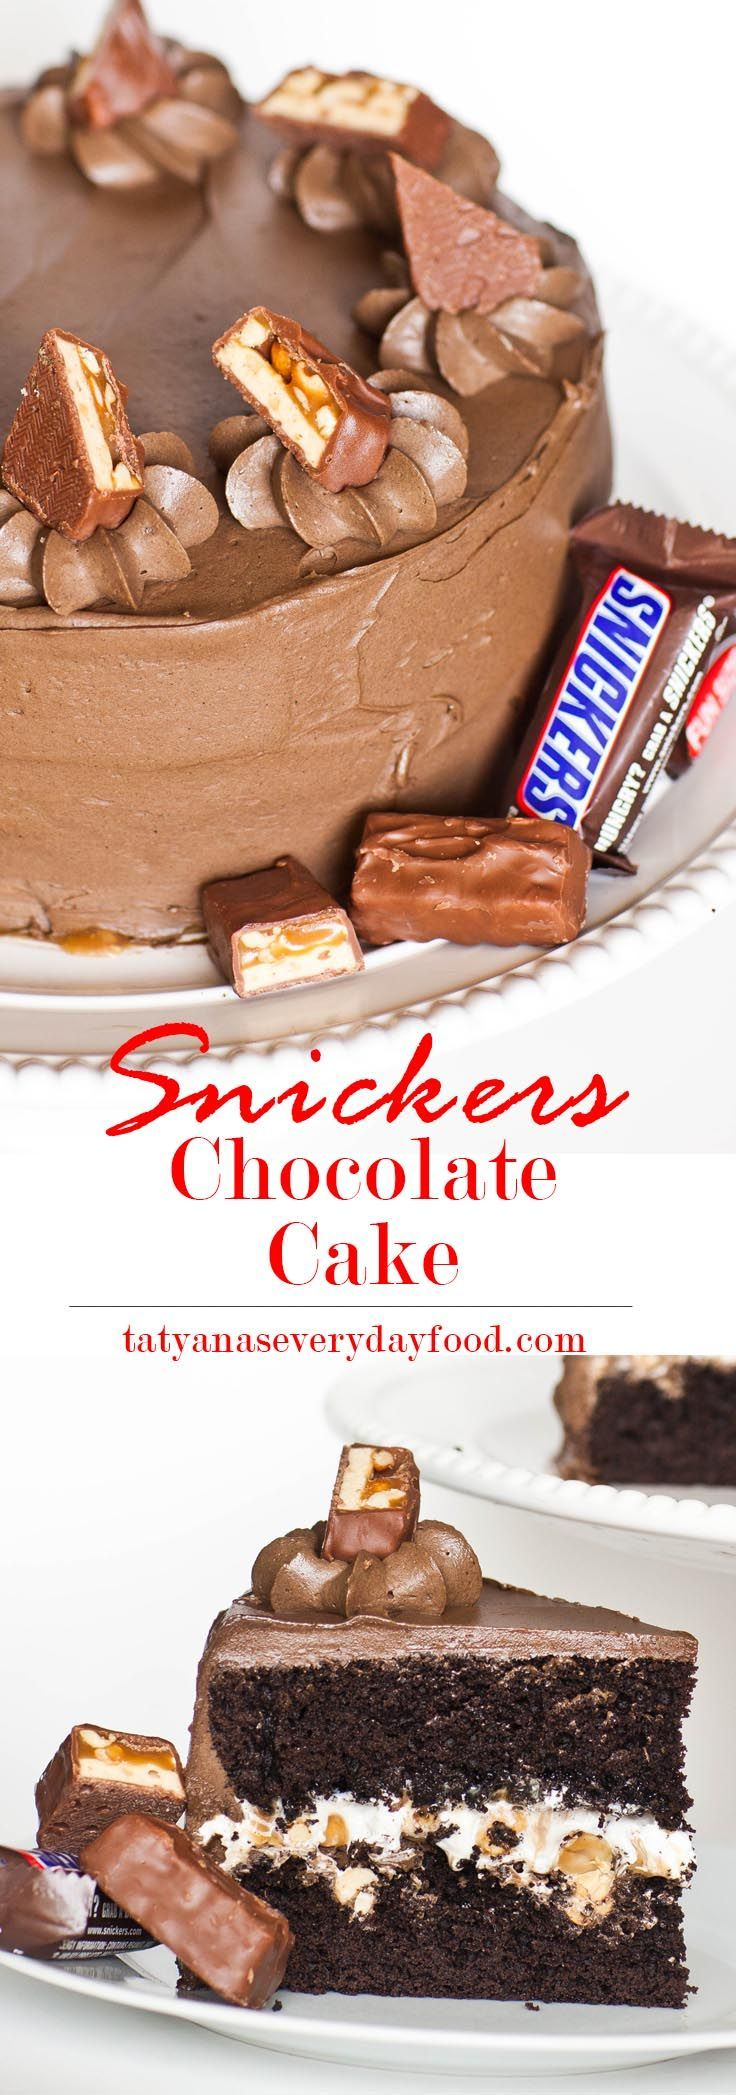 Snickers-inspired chocolate cake with marshmallow cream and salted peanut caramel sauce ~ Video Recipe from Tatyana's Everyday Food